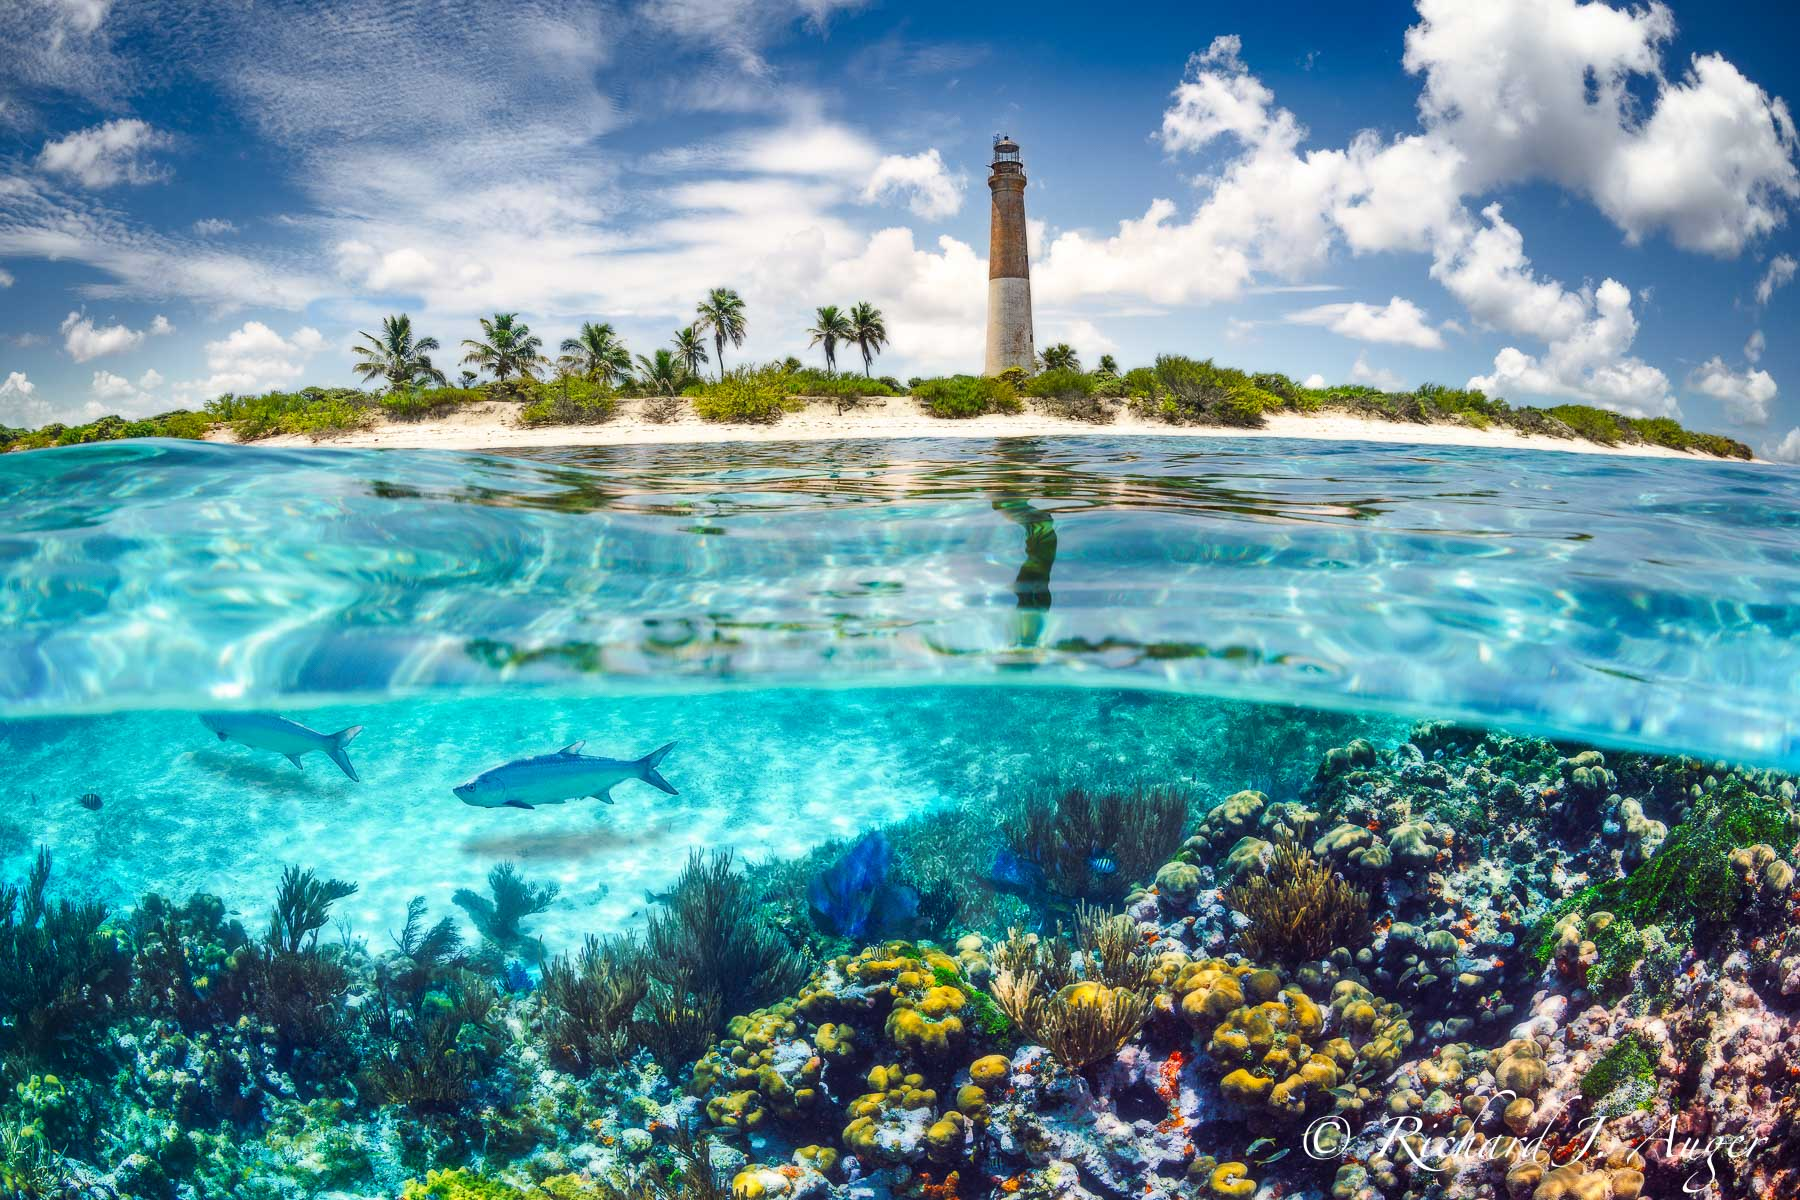 Loggerhead Lighhouse, Loggerhead Key, Dry Tortugas National Park, Little Africa Reef, Florida Keys, Ocean, Underwater, Landscape, Photograph, Photographer, Richard Auger